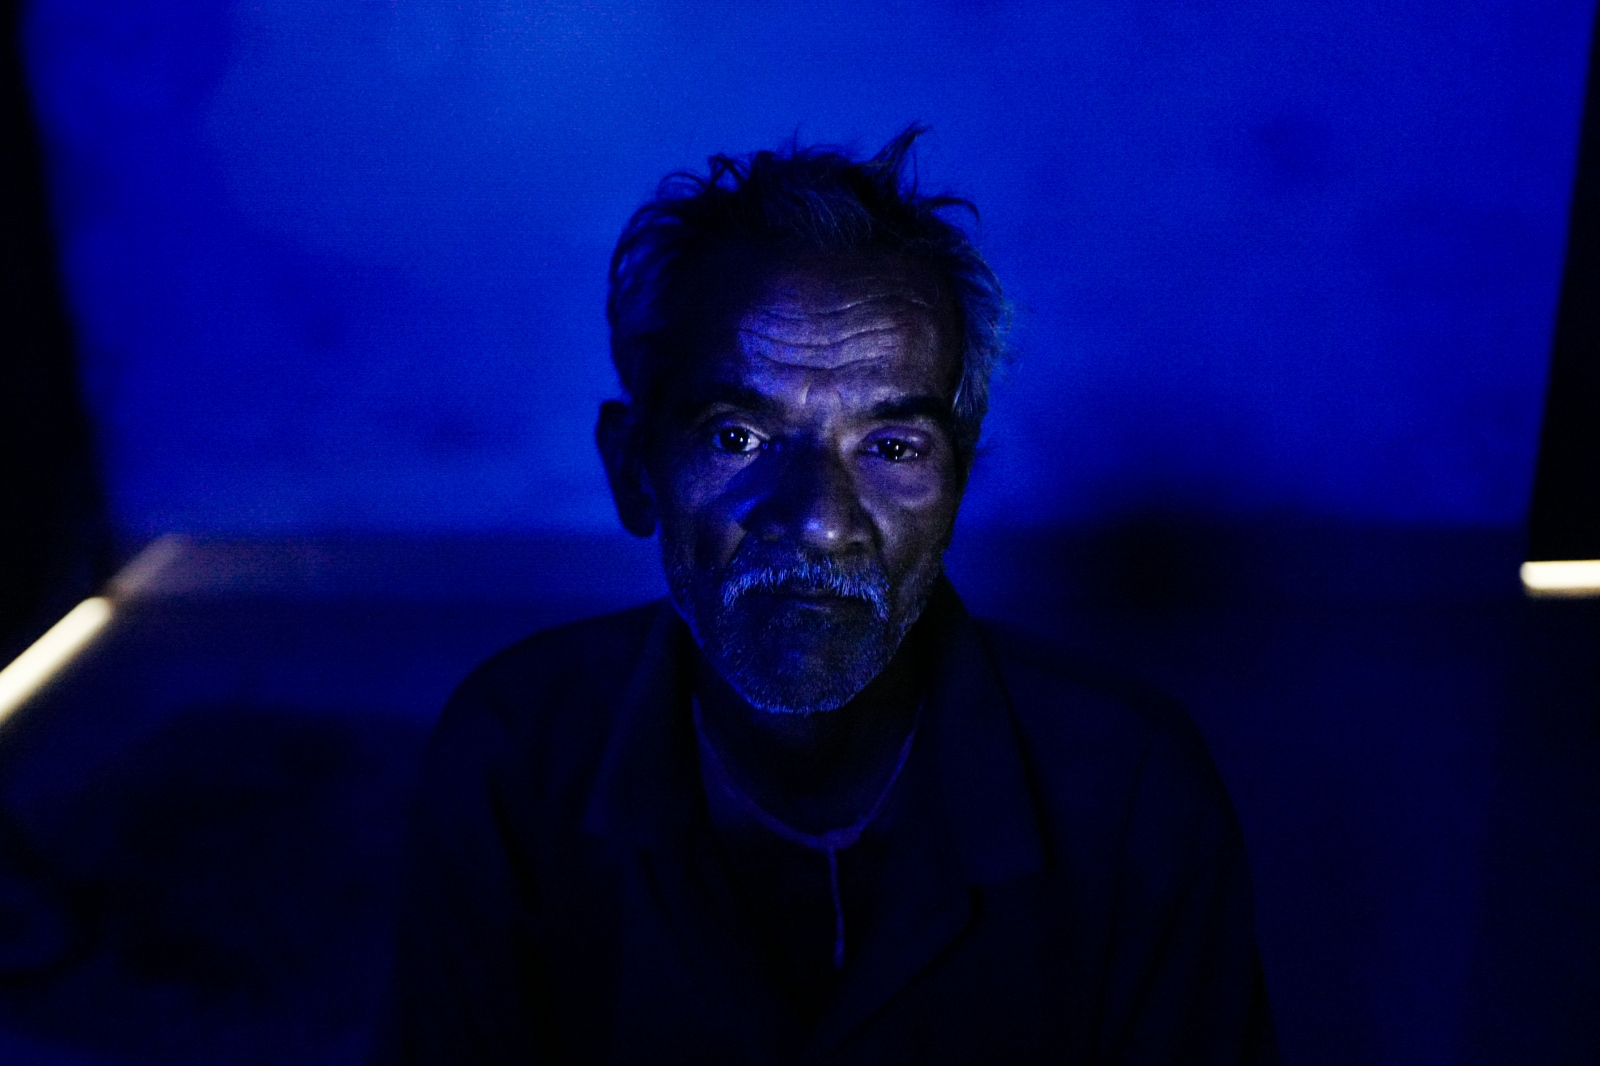 Agra, India. November 13, 2016. Portrait of Inderjeet, 50, the man who attacked his family in 1992. He served only three months in prison. His wife granted him forgiveness after receiving a threatening letter referring to attacks on her parents. She decided to continue living with him to avoid another attack.